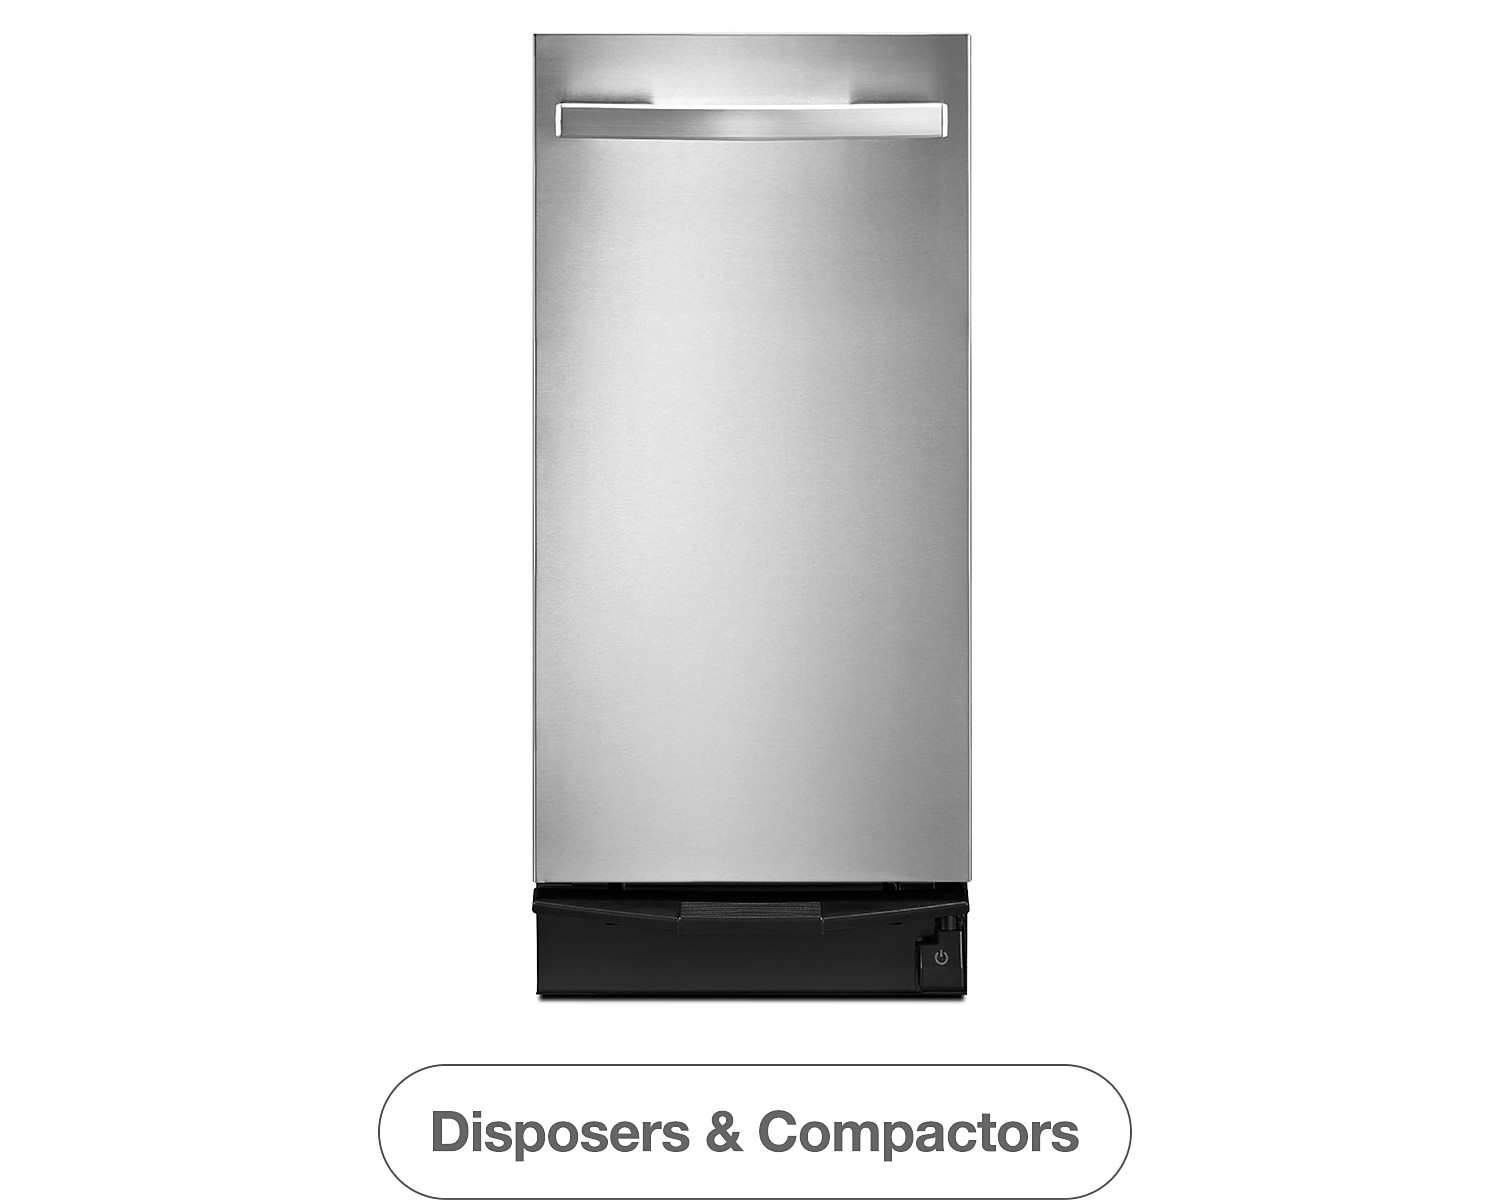 Whirlpool Disposers & Compactors